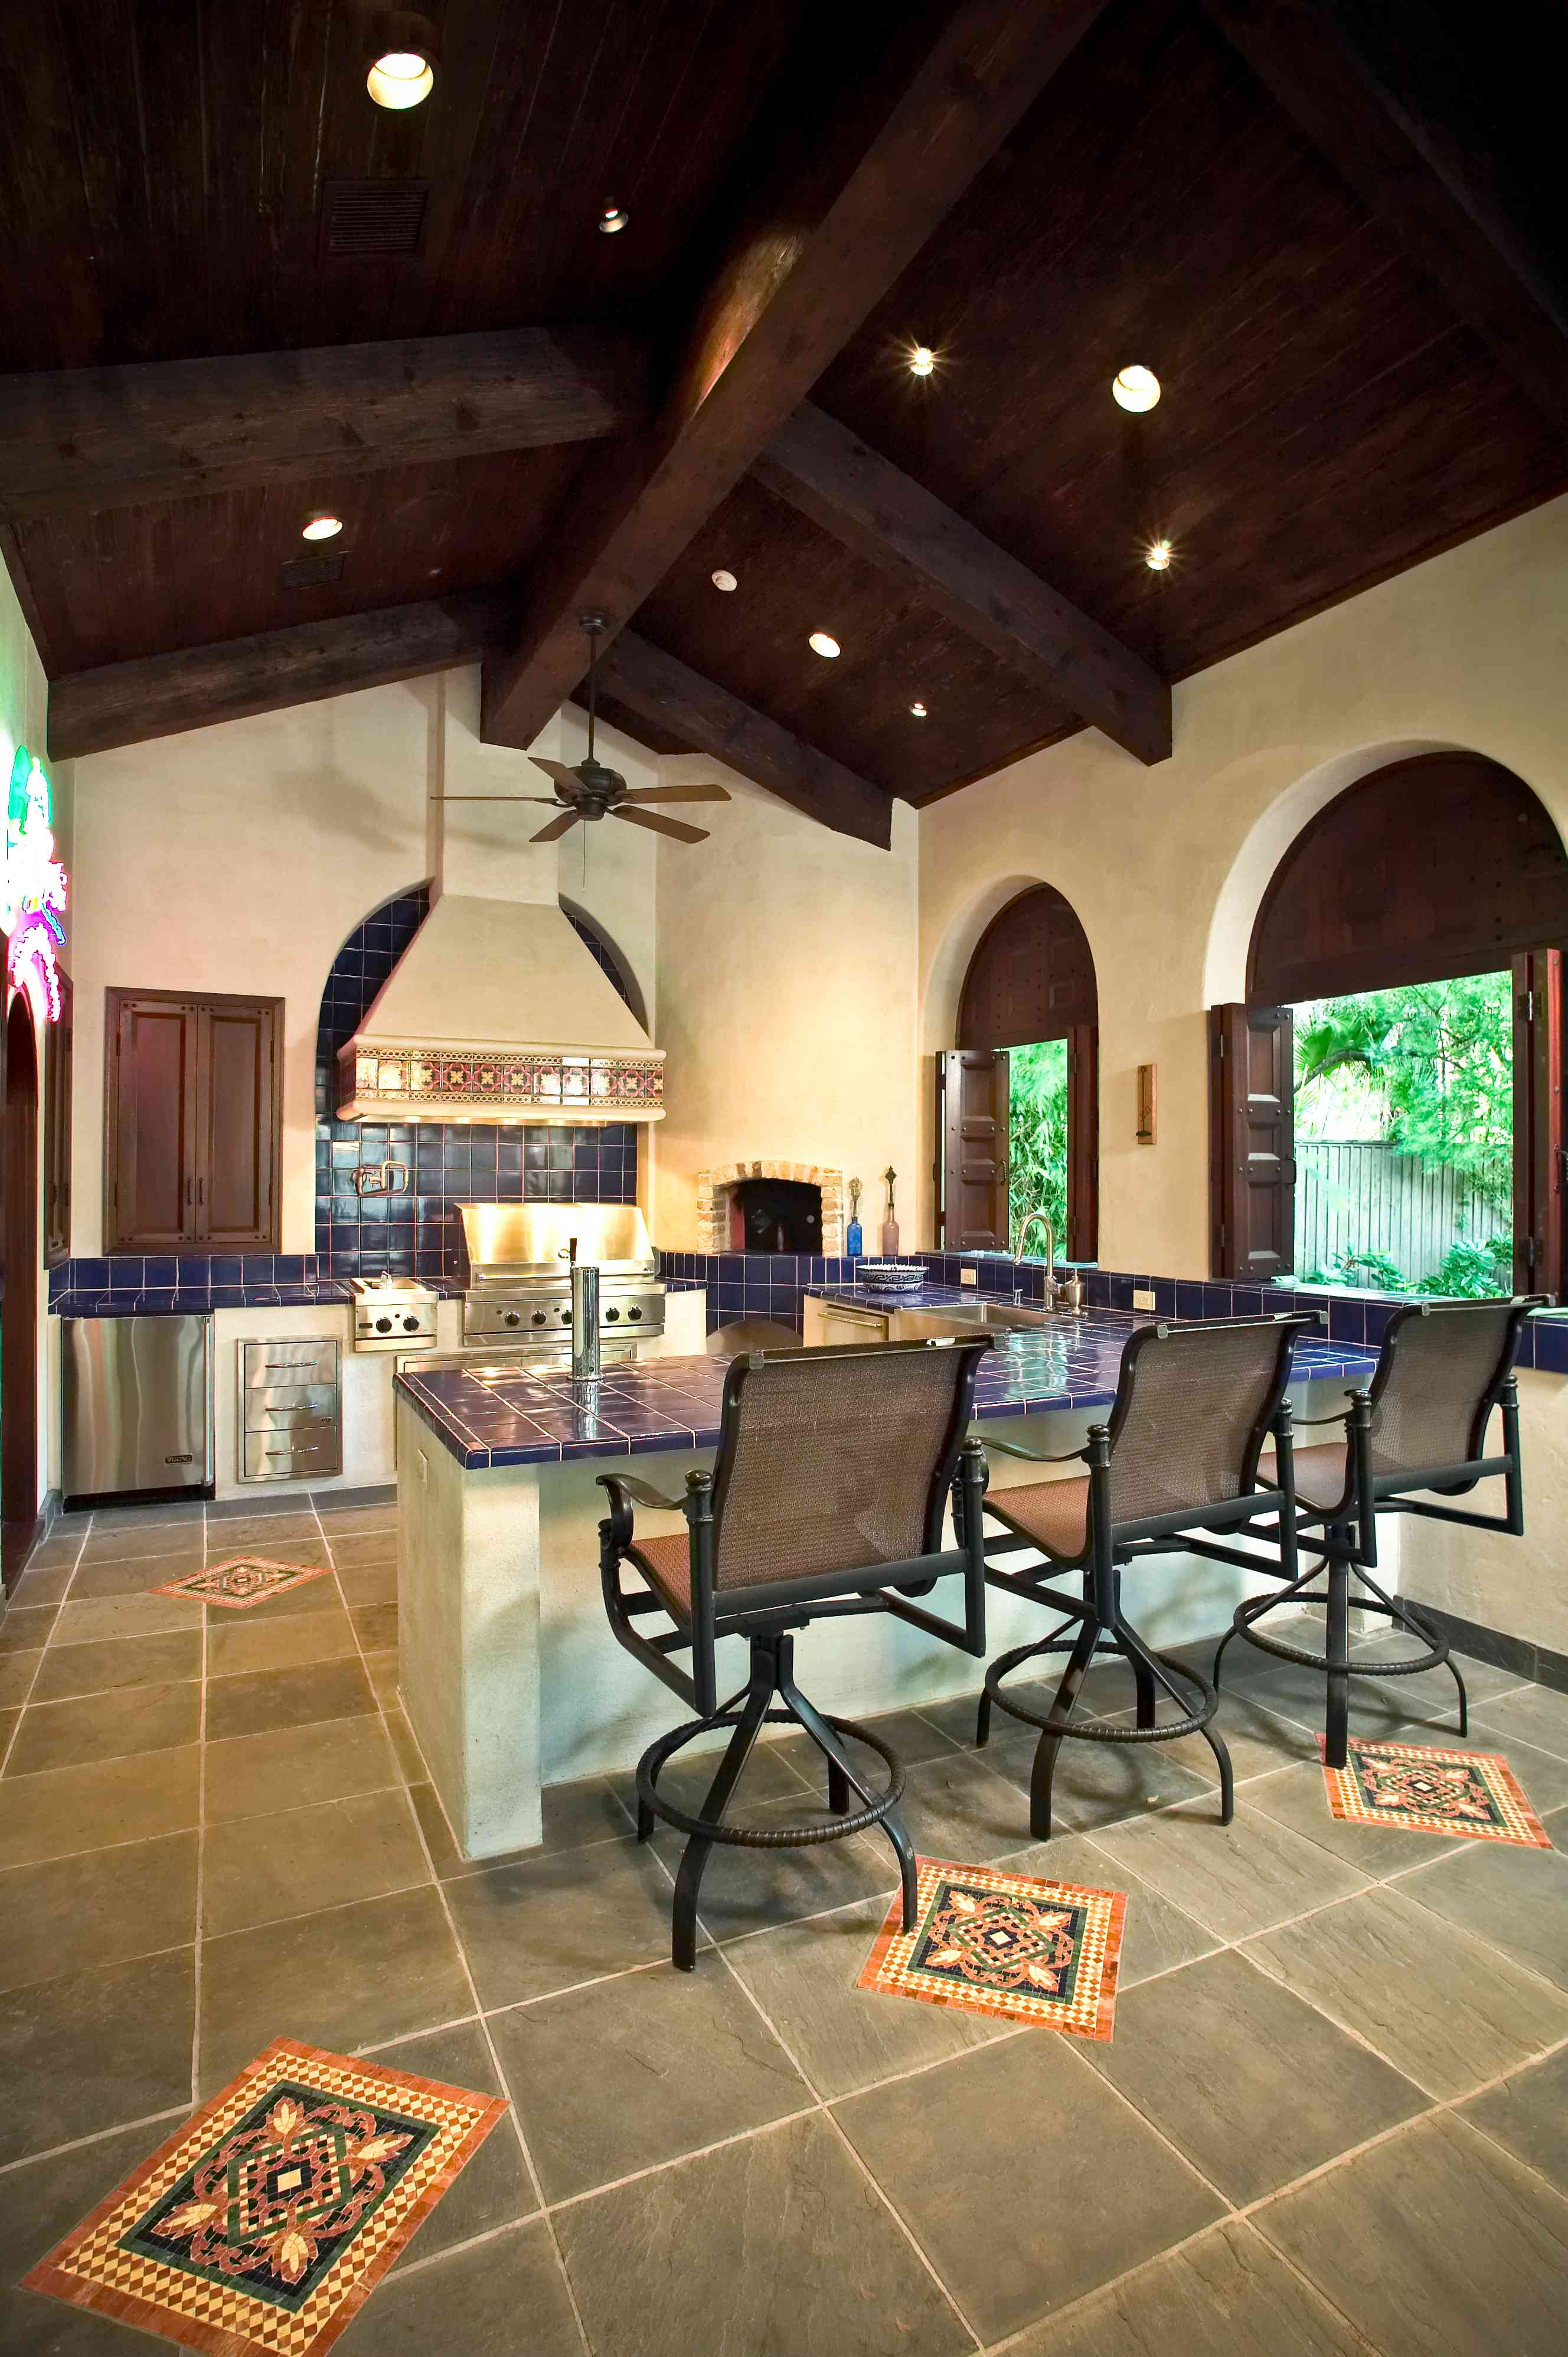 Spanish style kitchen in newly built home